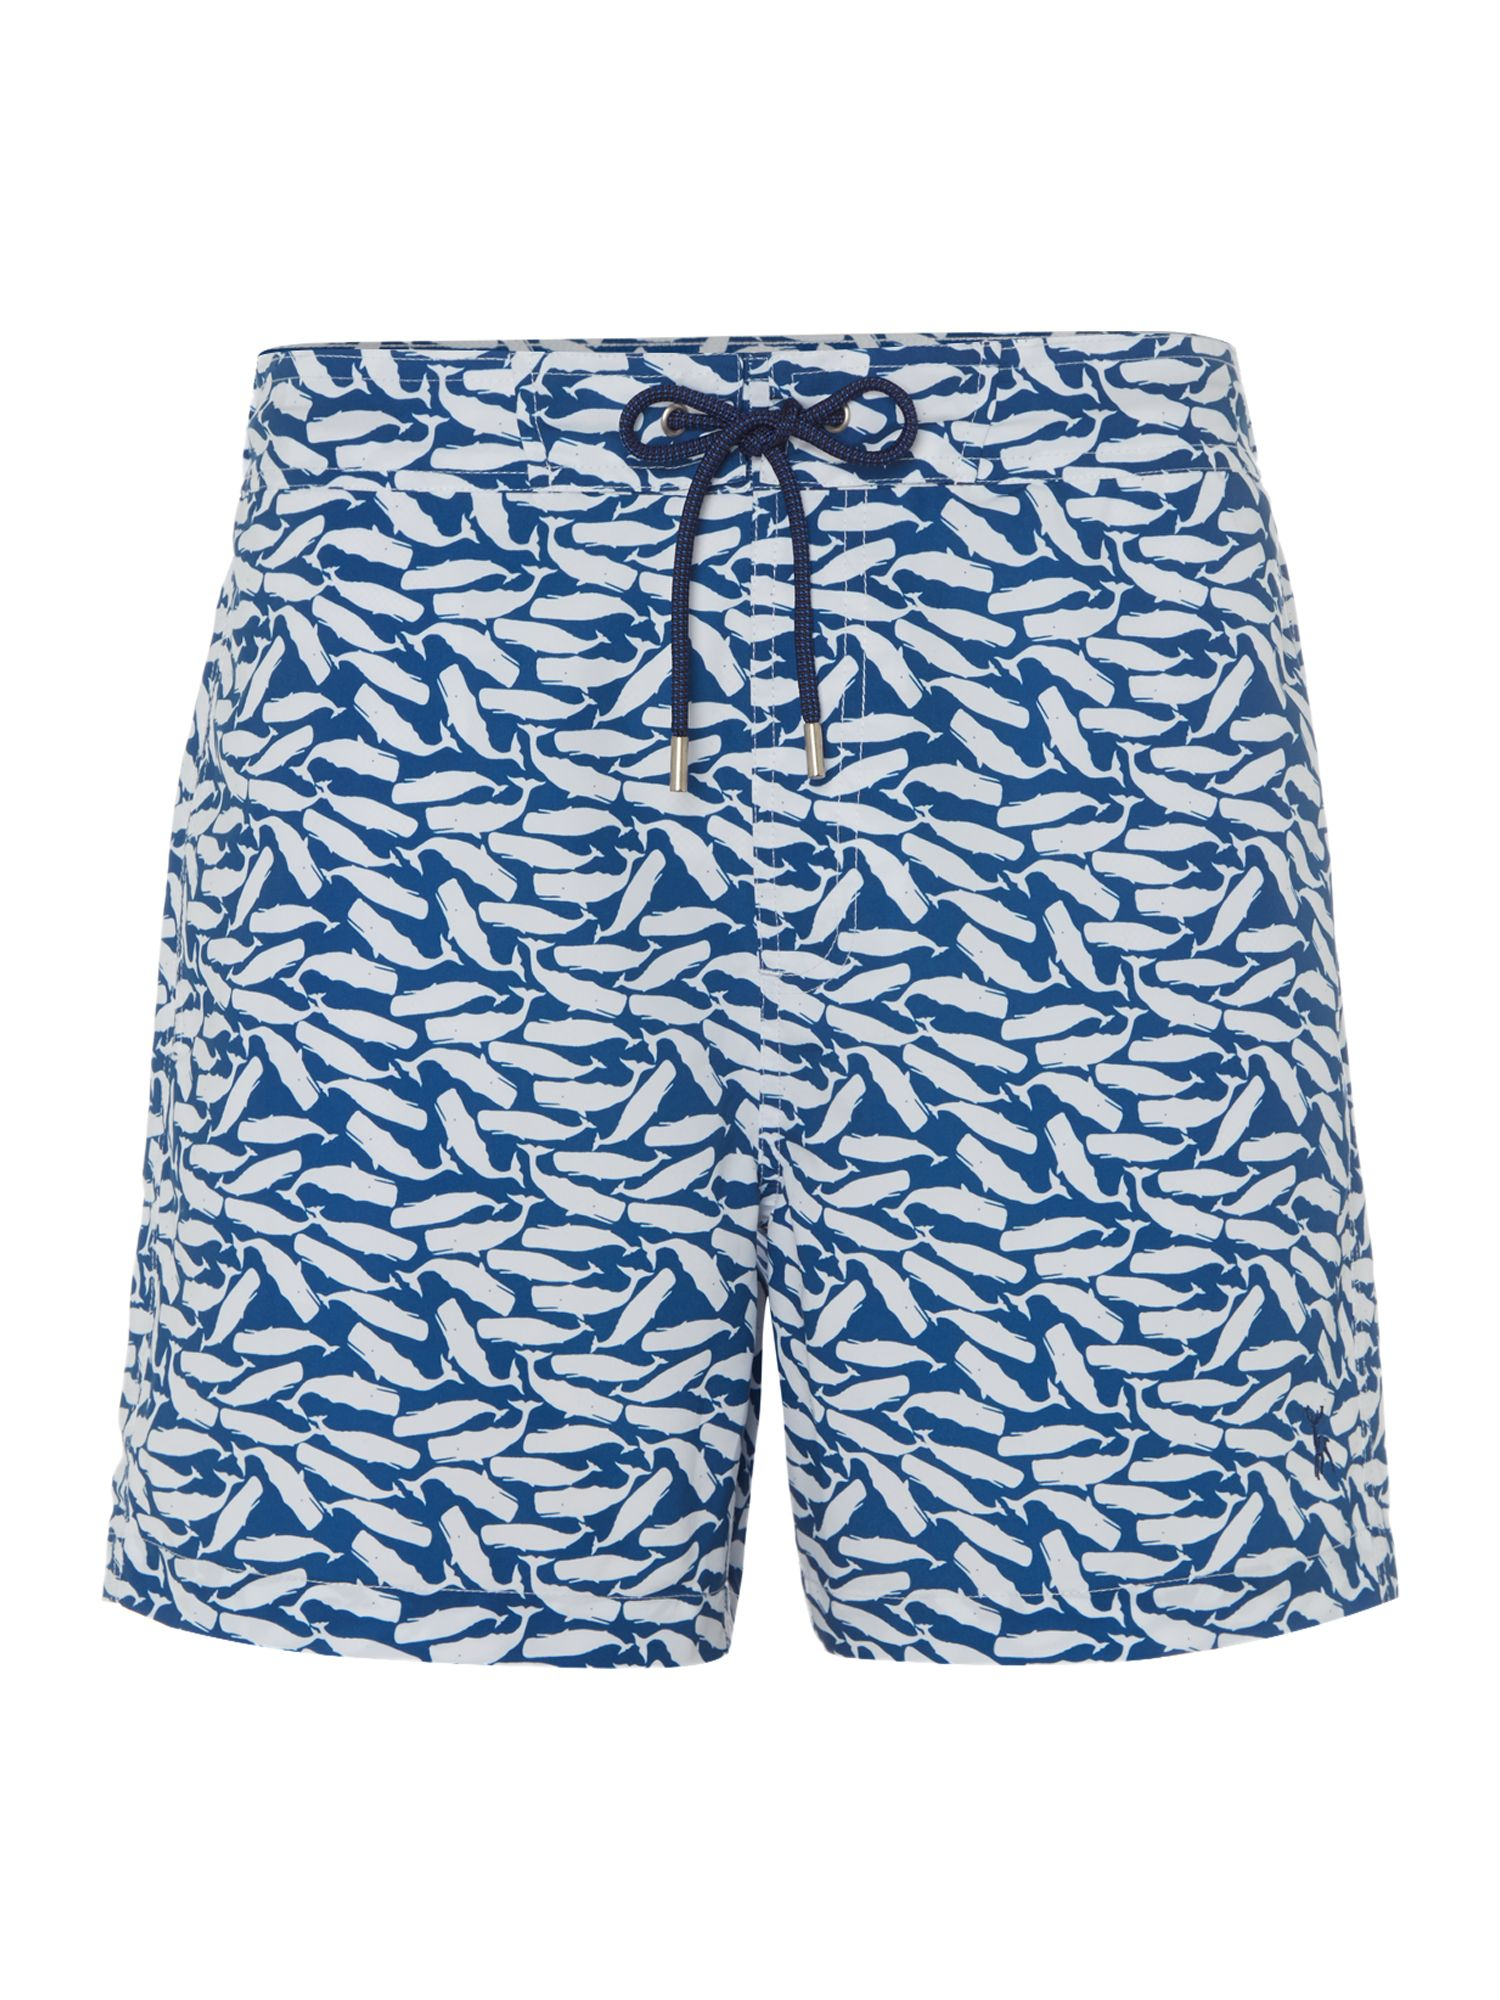 Men's Linea Whale Print Swim Short, Blue